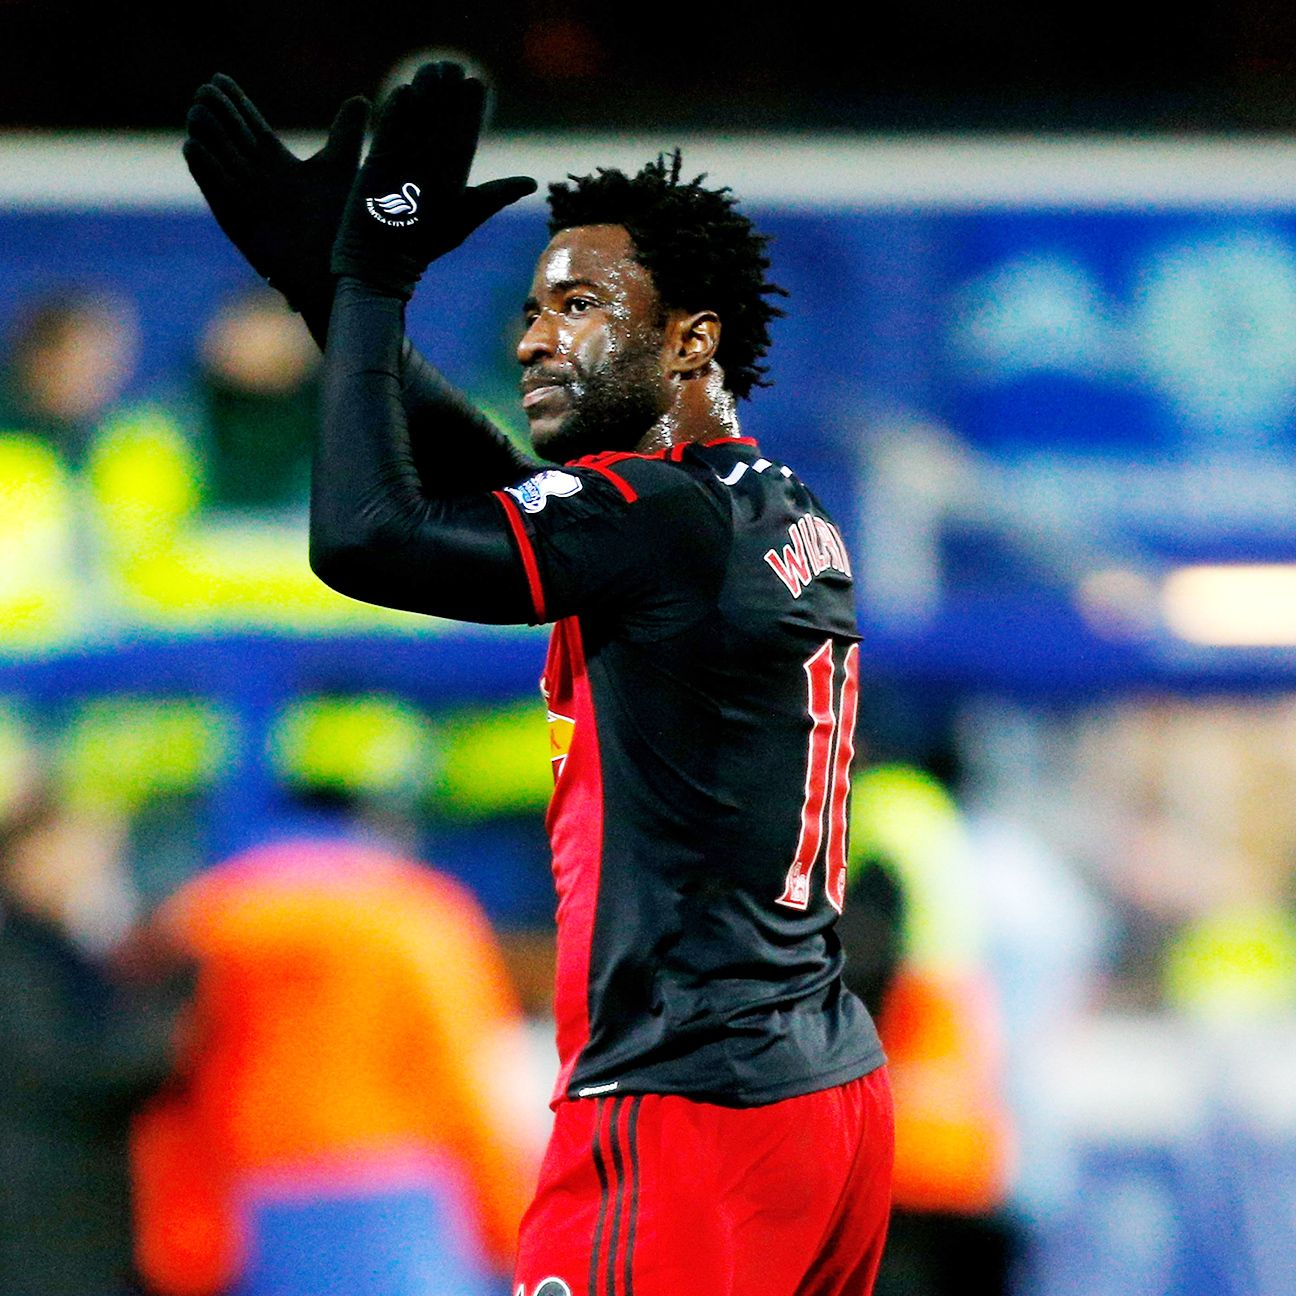 Swansea will face a tough winter stretch without star striker Wilfried Bony.